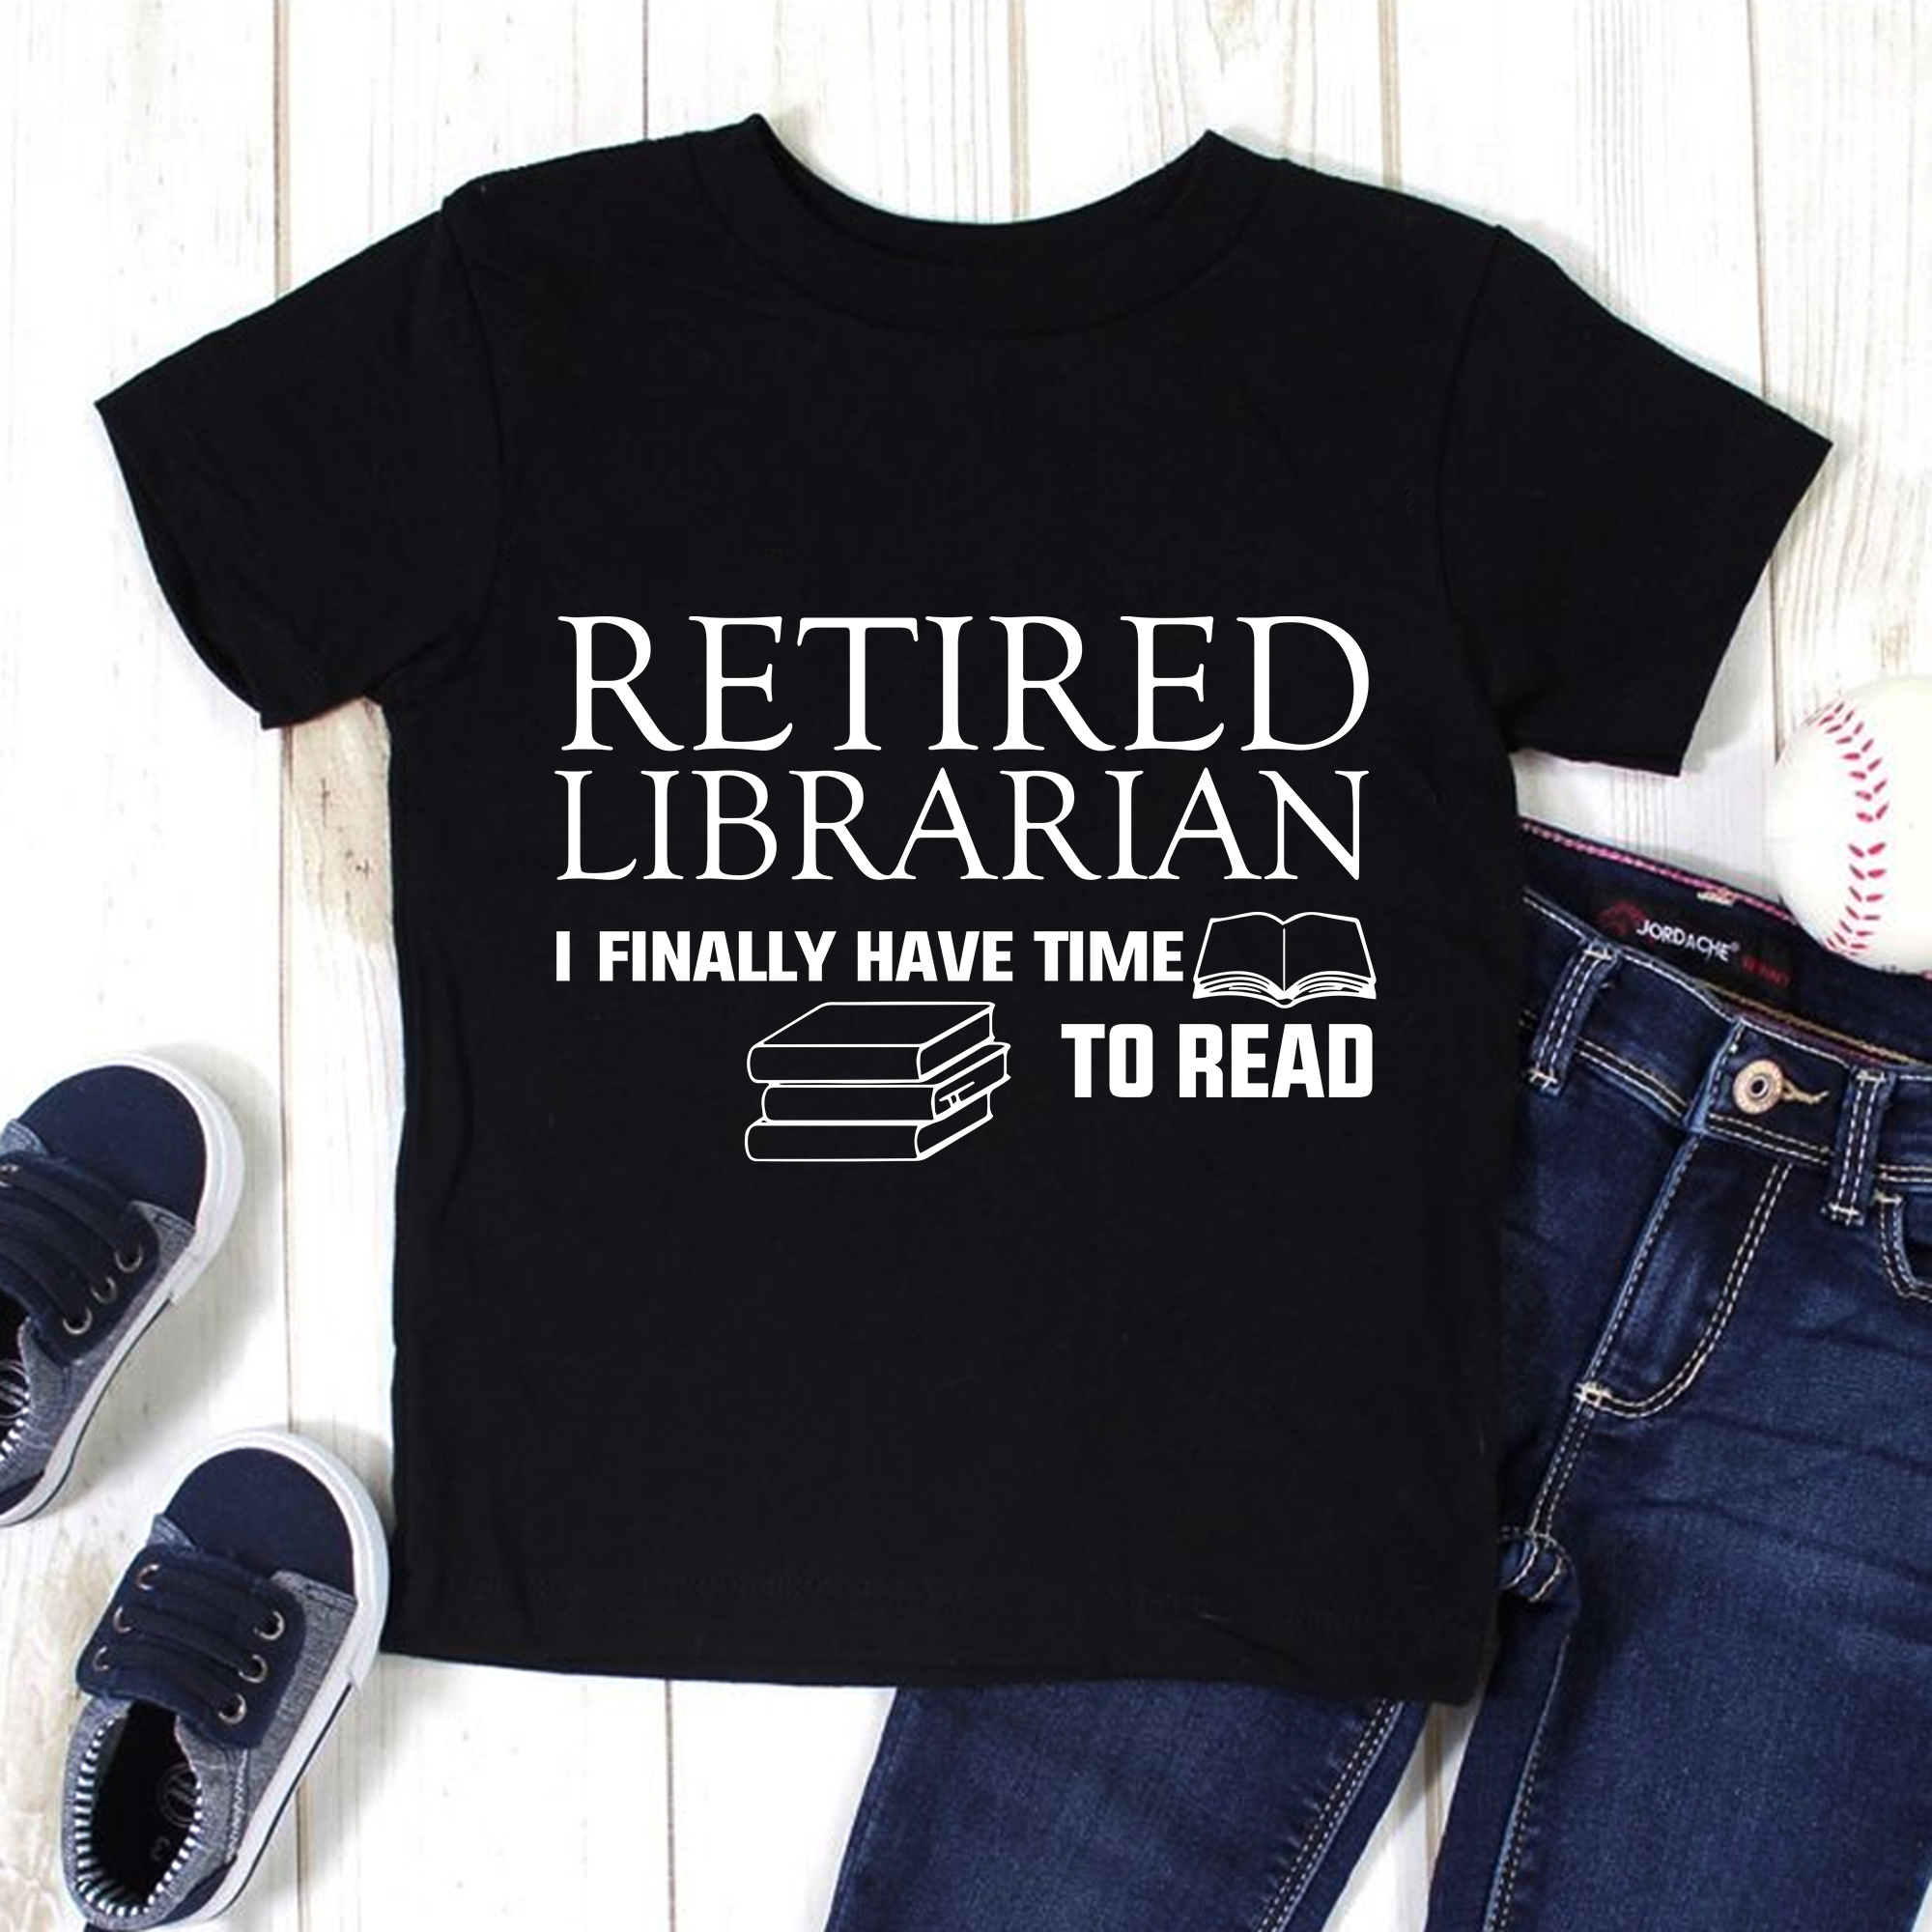 Retired Librarian Shirt I Finally Have Time To Read